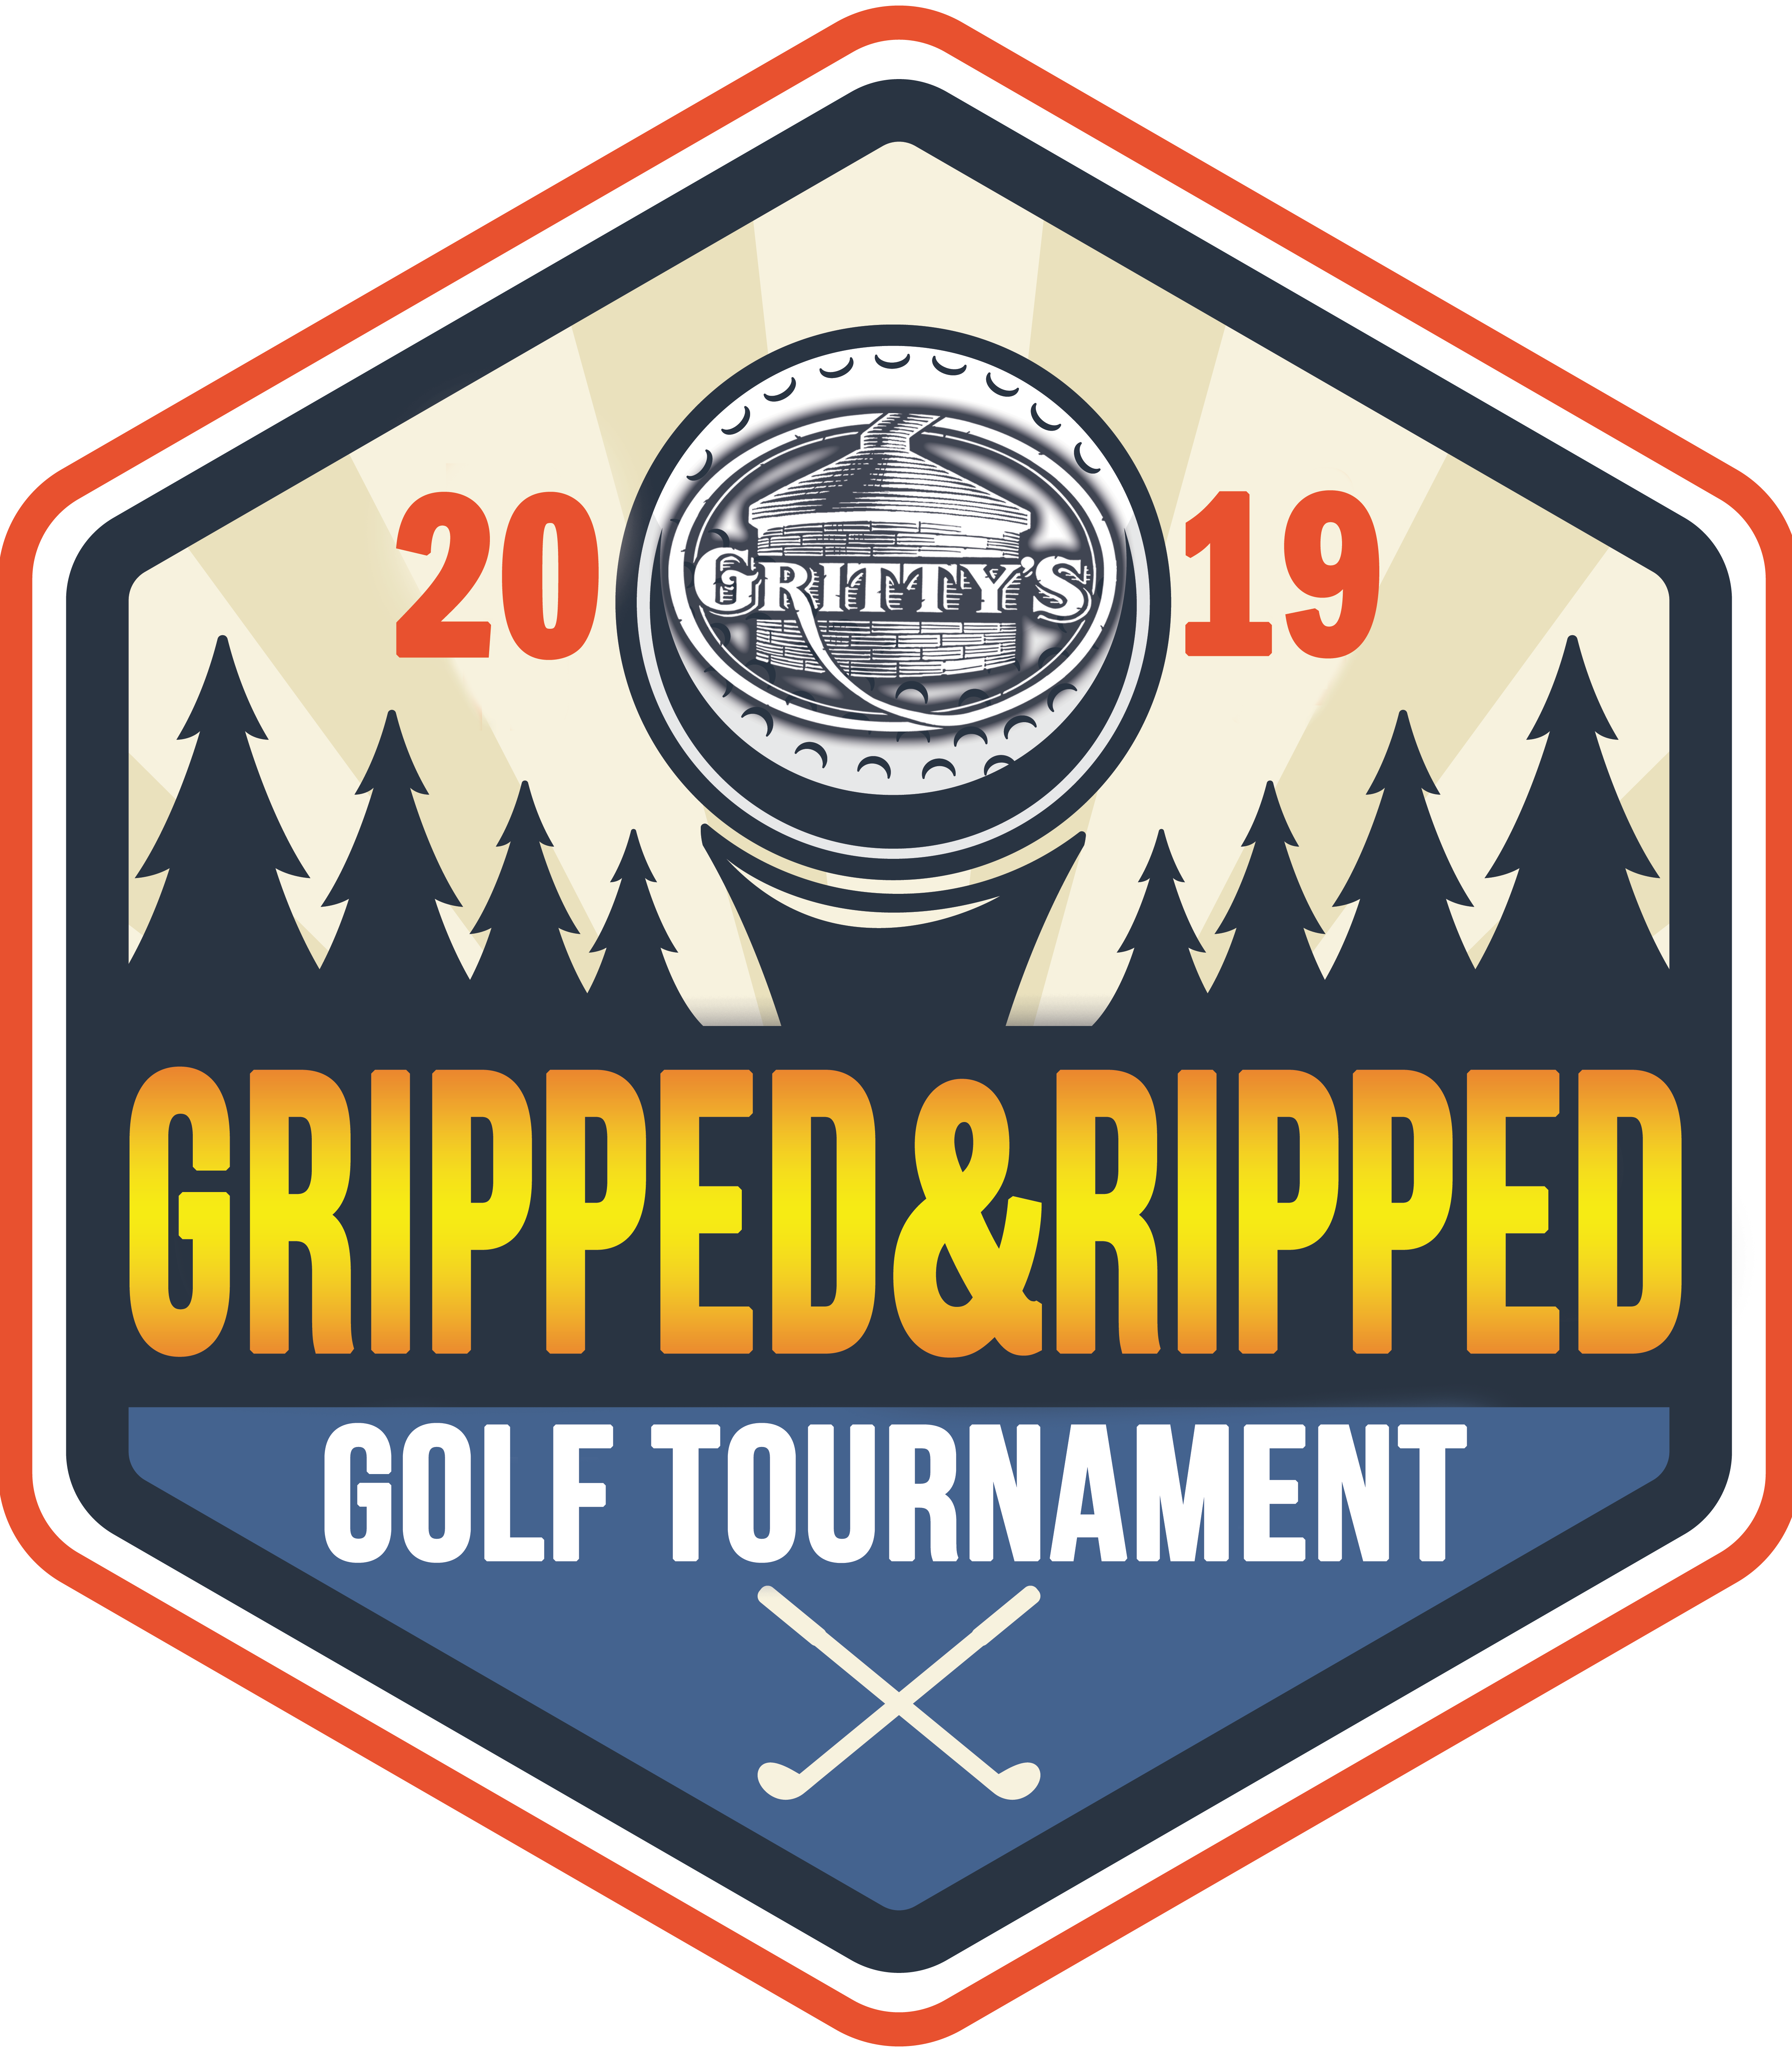 Event home page - Gritty's Gripped & Ripped 2019 Golf Tournament